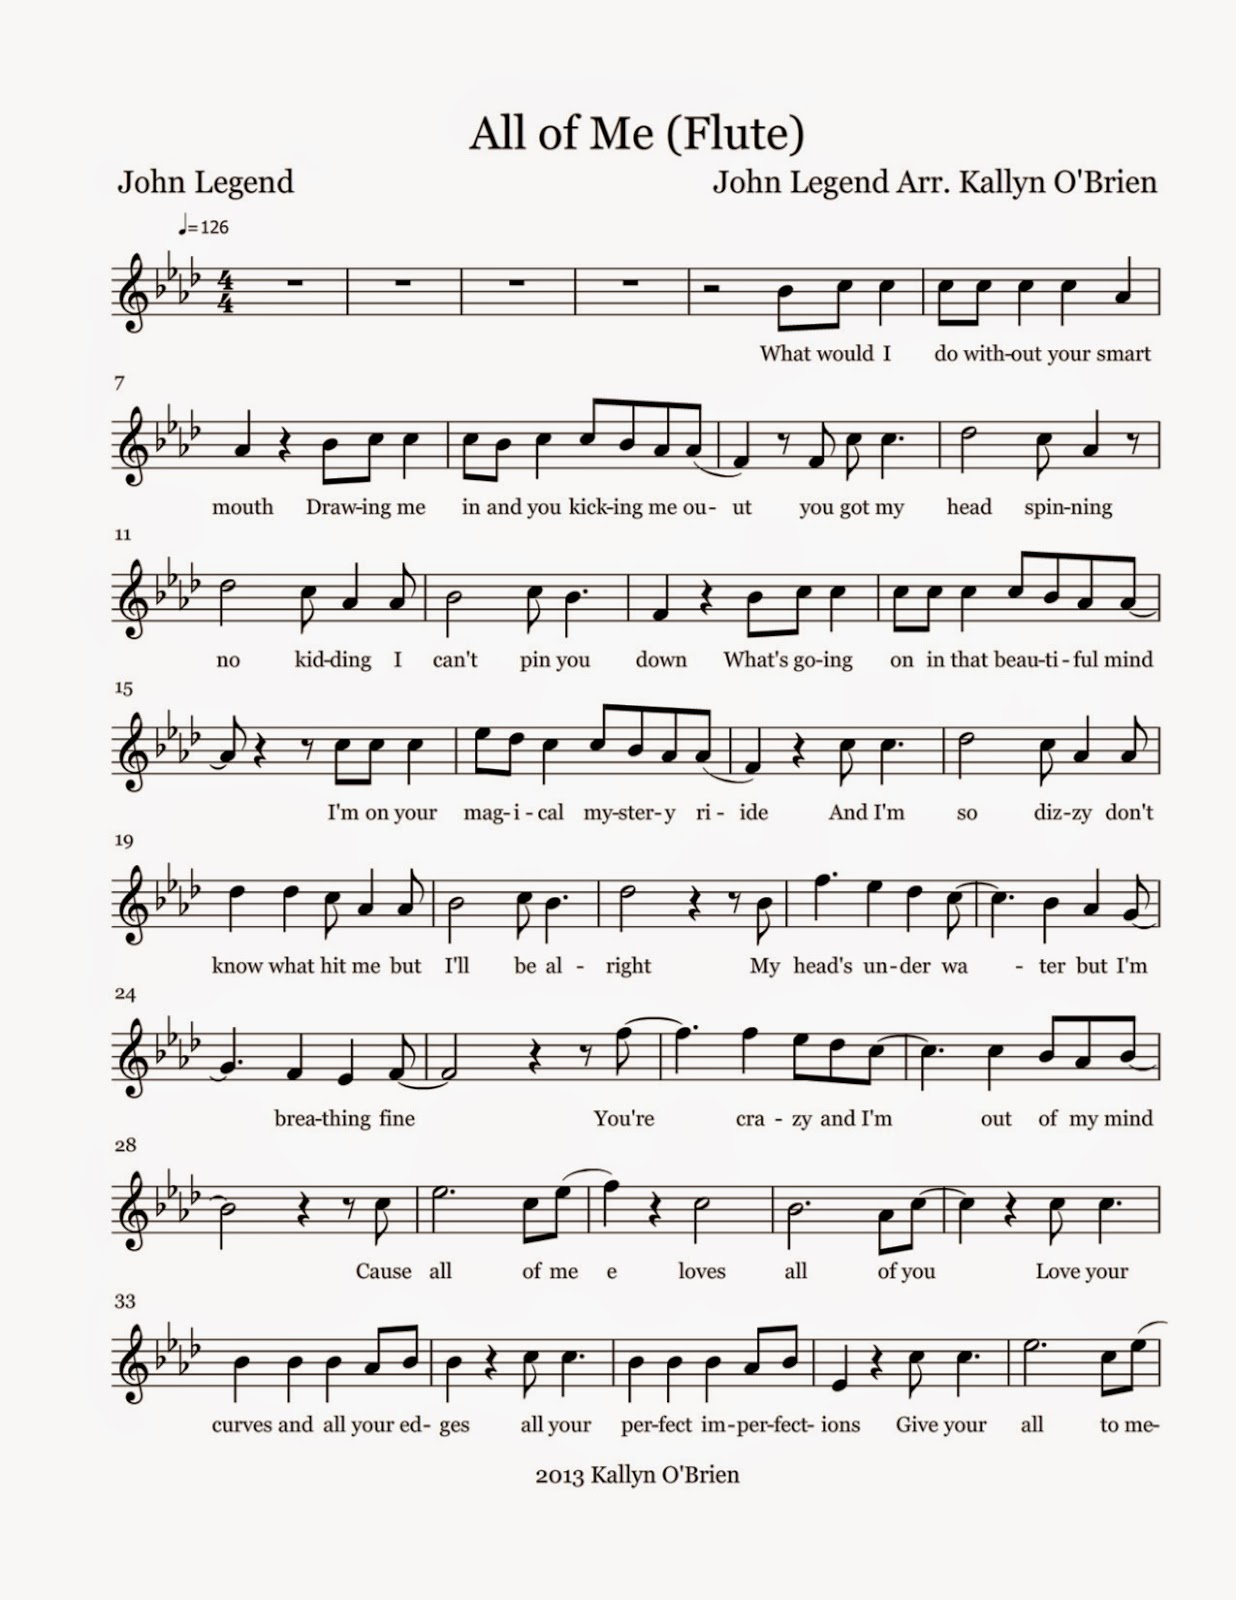 Flute sheet music all of me sheet music all of me sheet music hexwebz Gallery